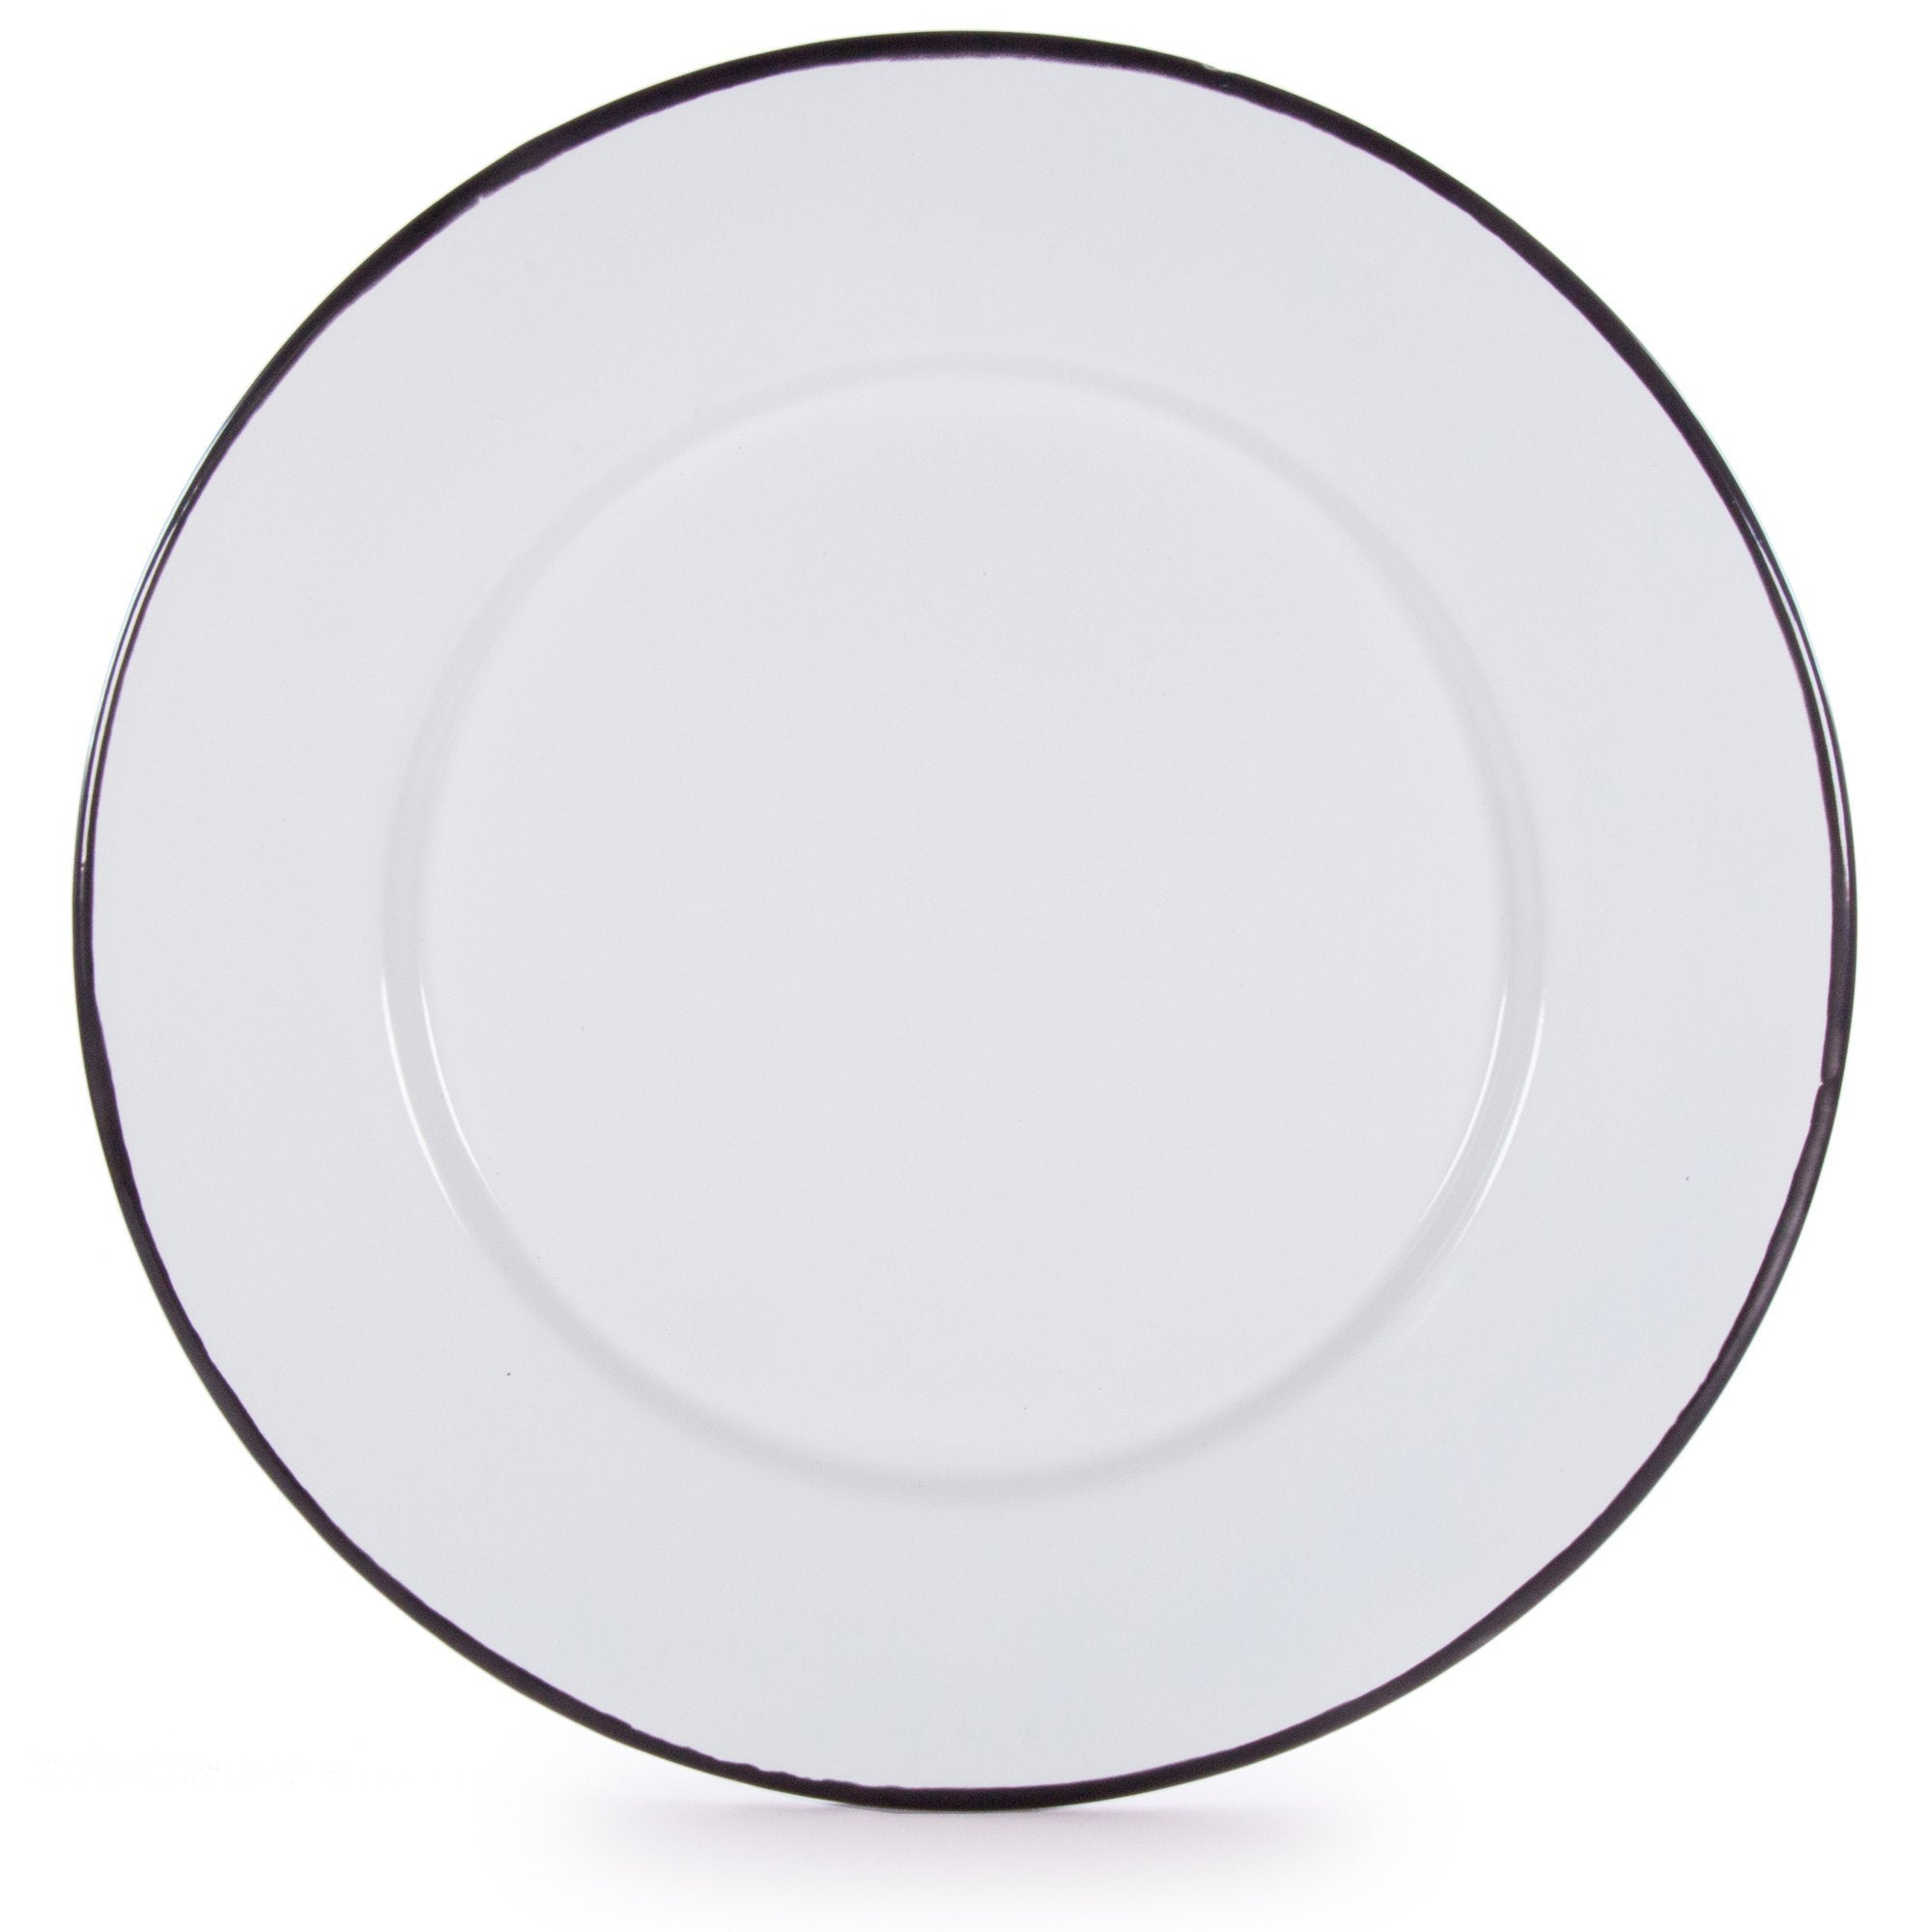 Glampware  Plates - White with Black Trim  - Set of 4